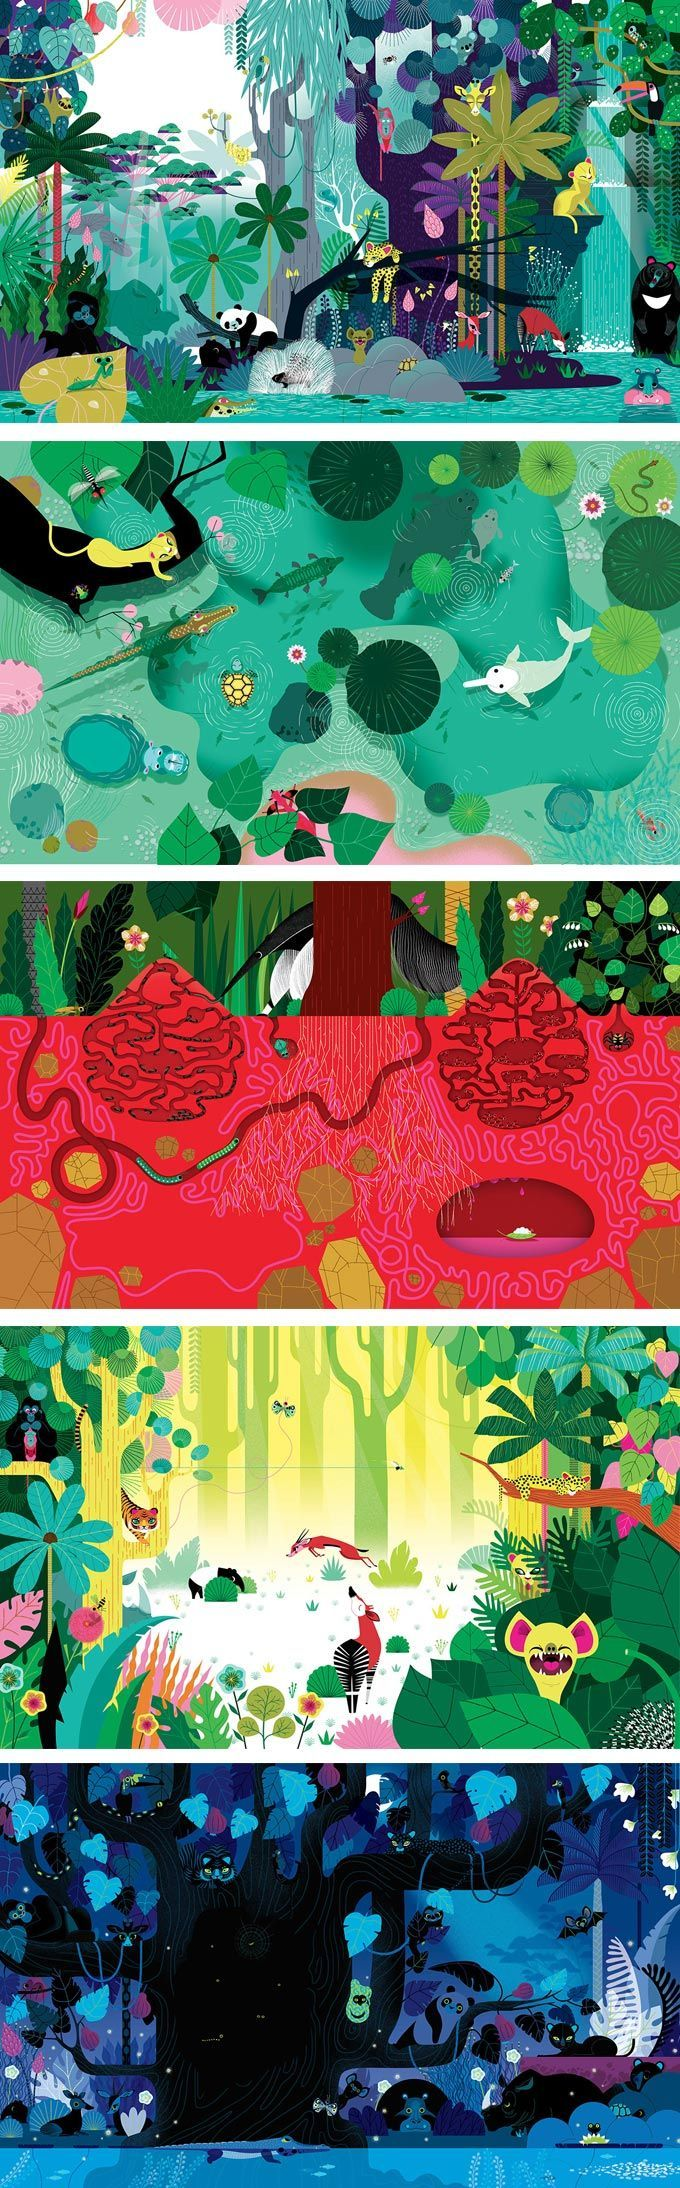 Lucie Brunelliere S Vibrant Jungle With Over 50 Animals